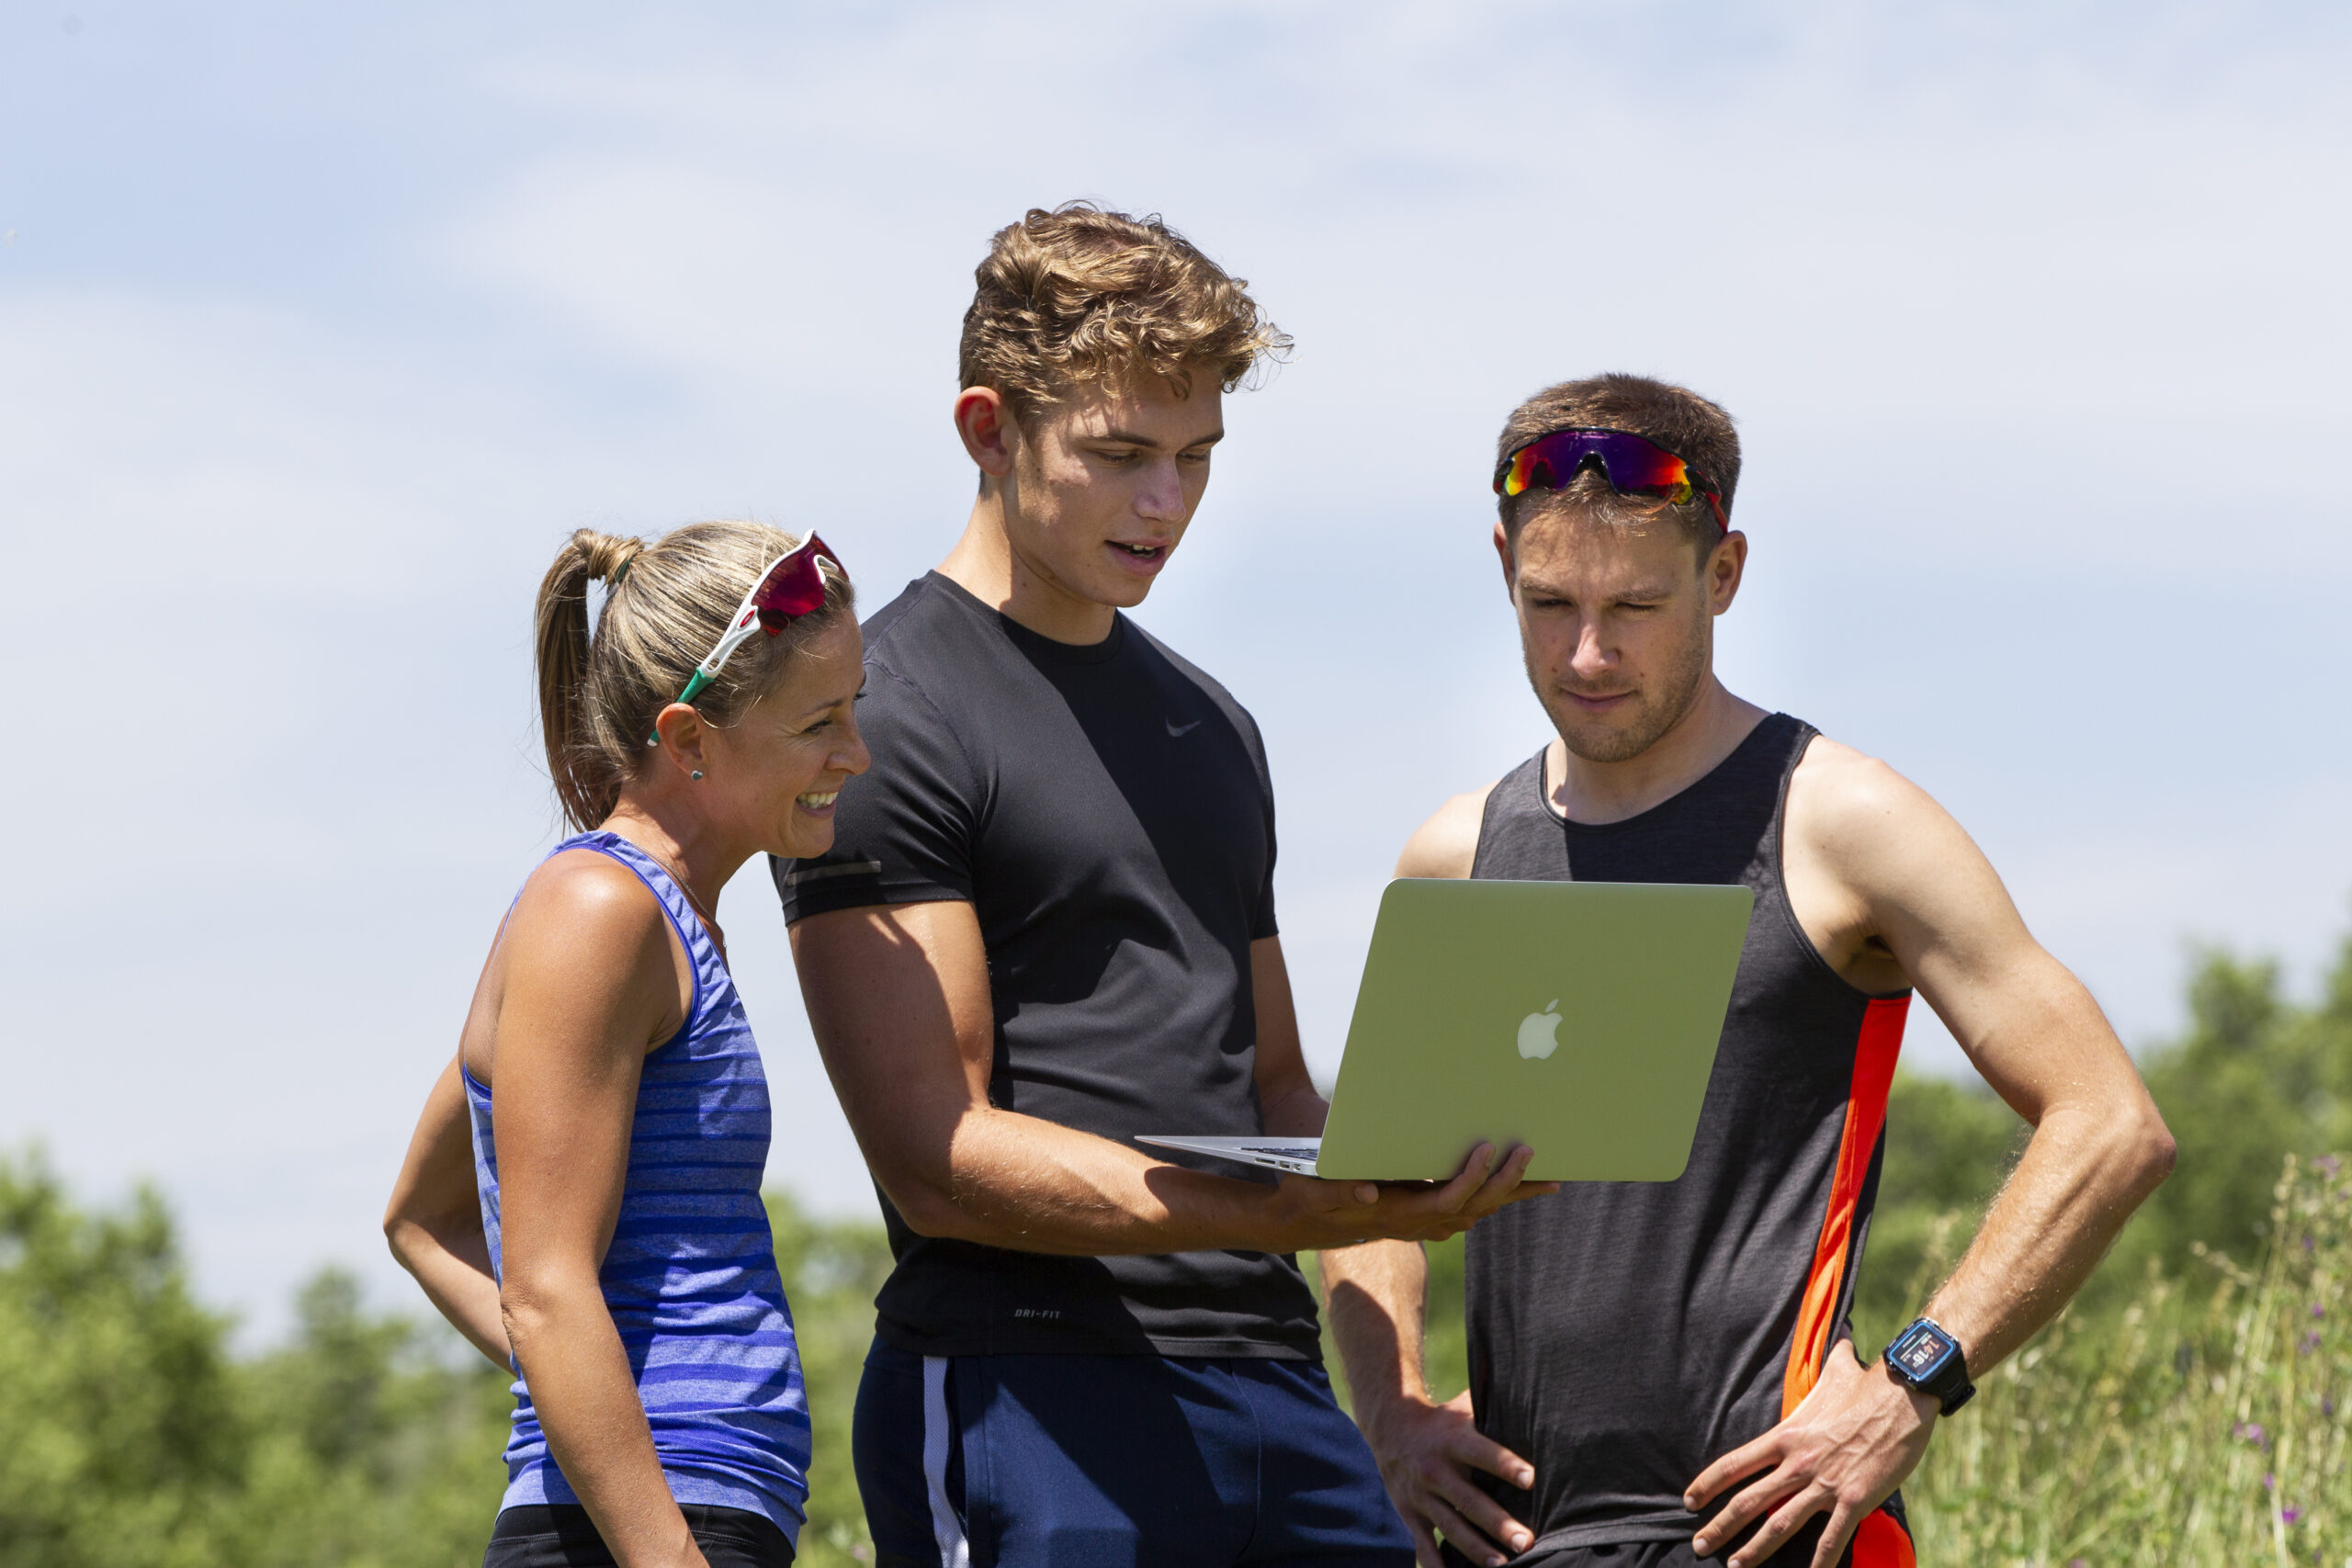 Running INSCYD coach shows results Power Performance Decoder that only uses GPS data